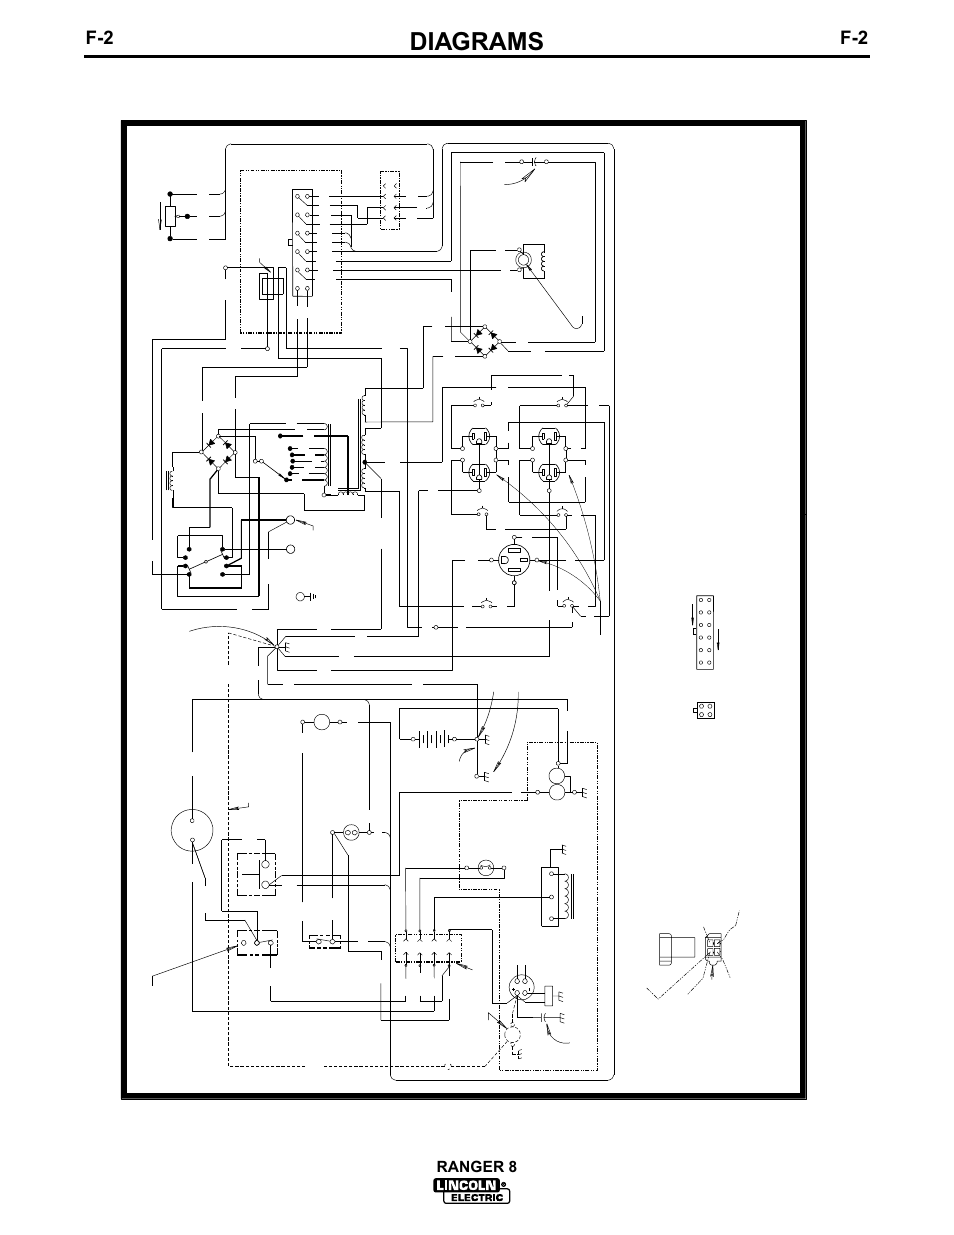 diagrams, ranger 8, electrical symbols per e1537 | lincoln ... 2015 f550 ford 7 pin wiring diagram lincoln 7 pin wiring diagram #11